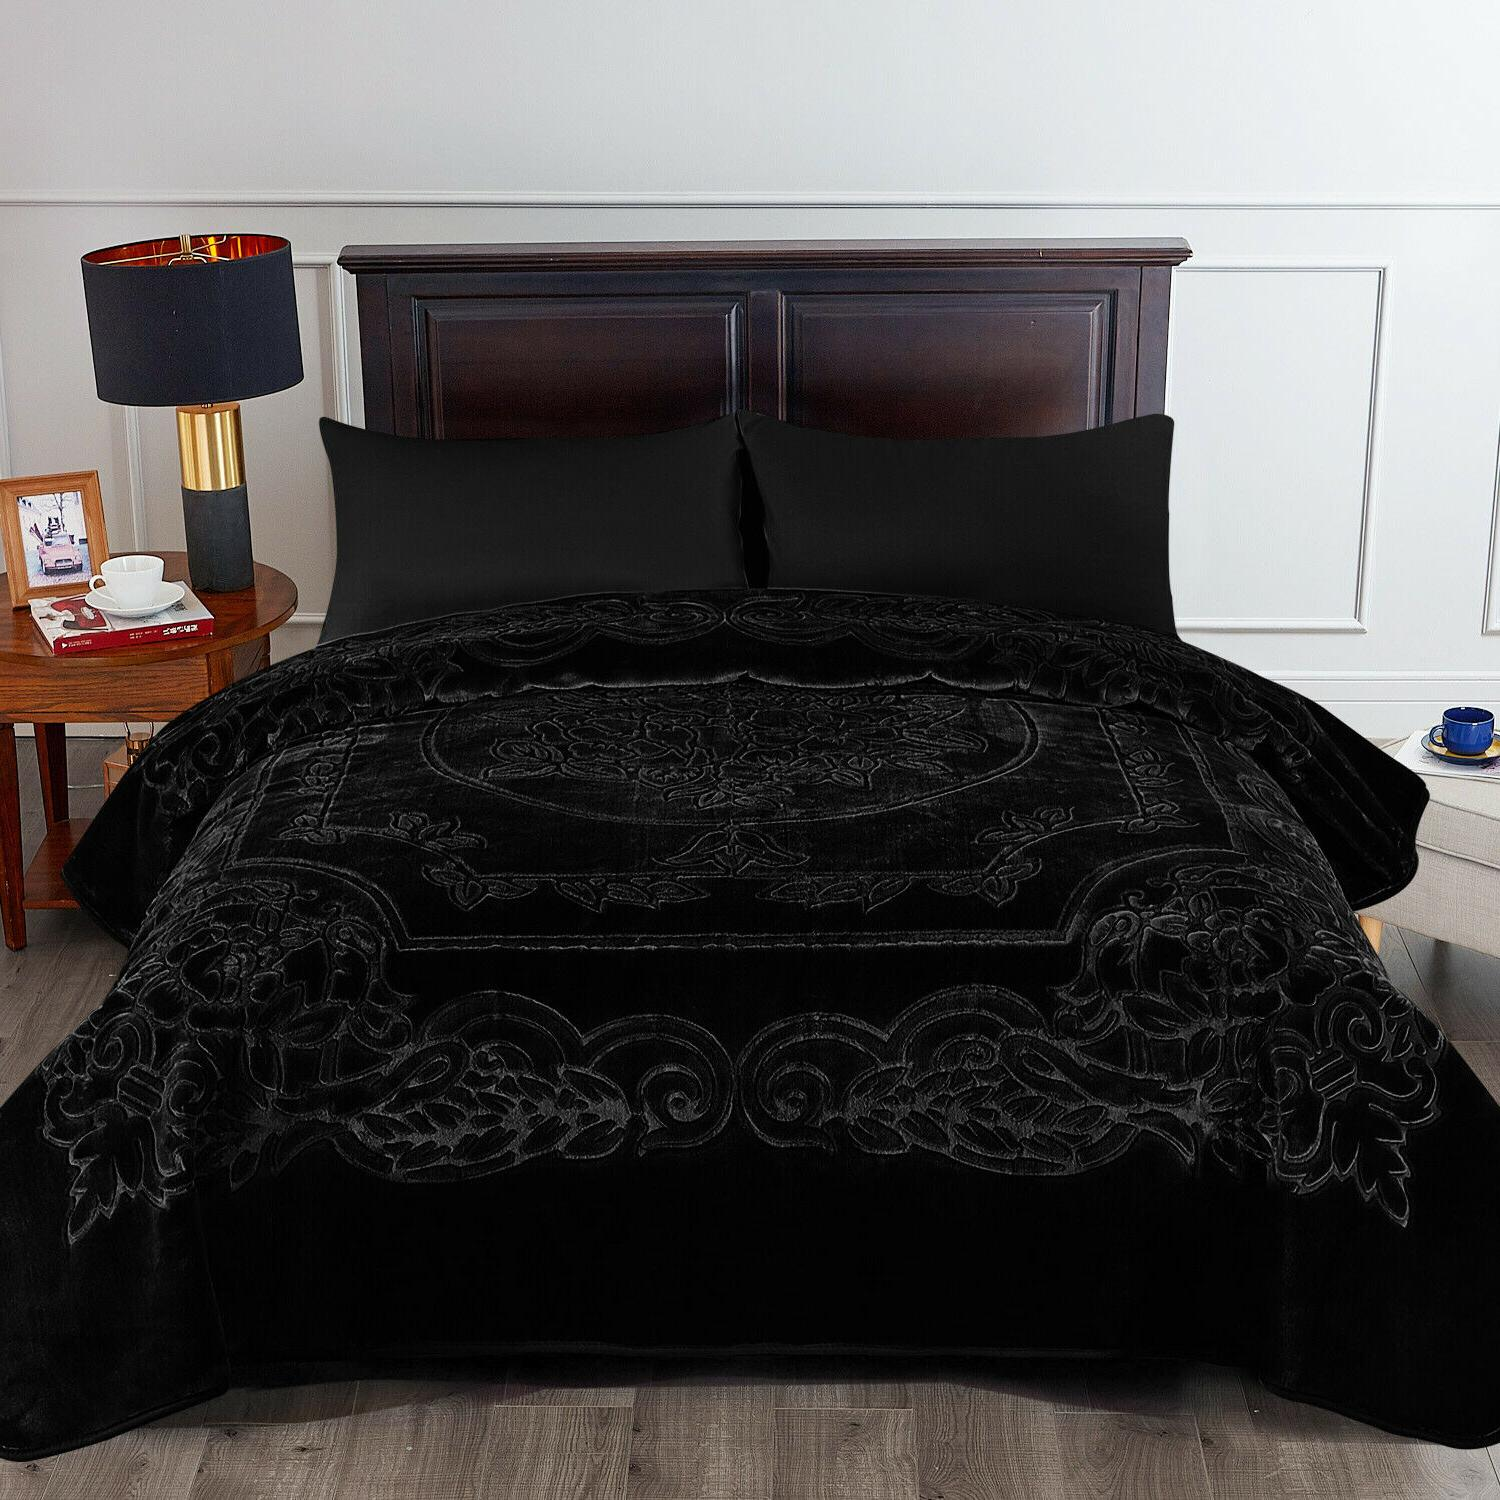 Heavy Thick Blanket X Inches- 9 Size 7 Classic